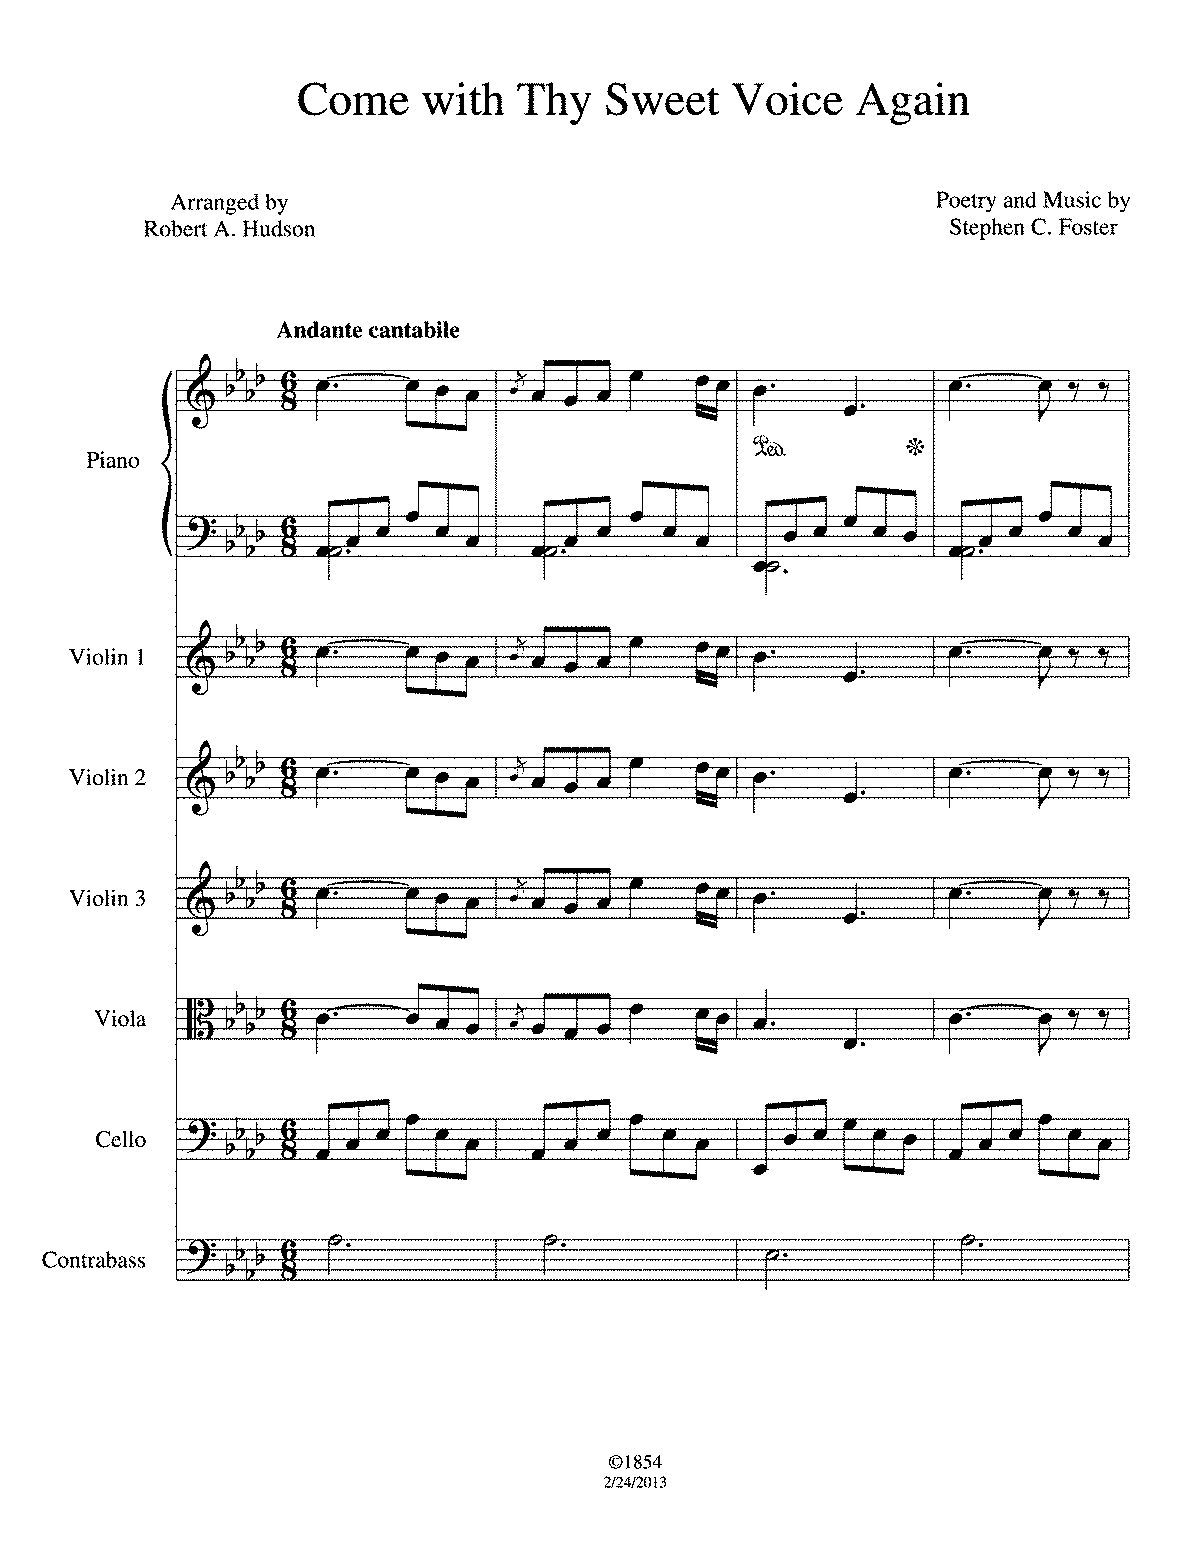 PMLP314074-Come with Thy Sweet Voice Again Conductors Score.pdf